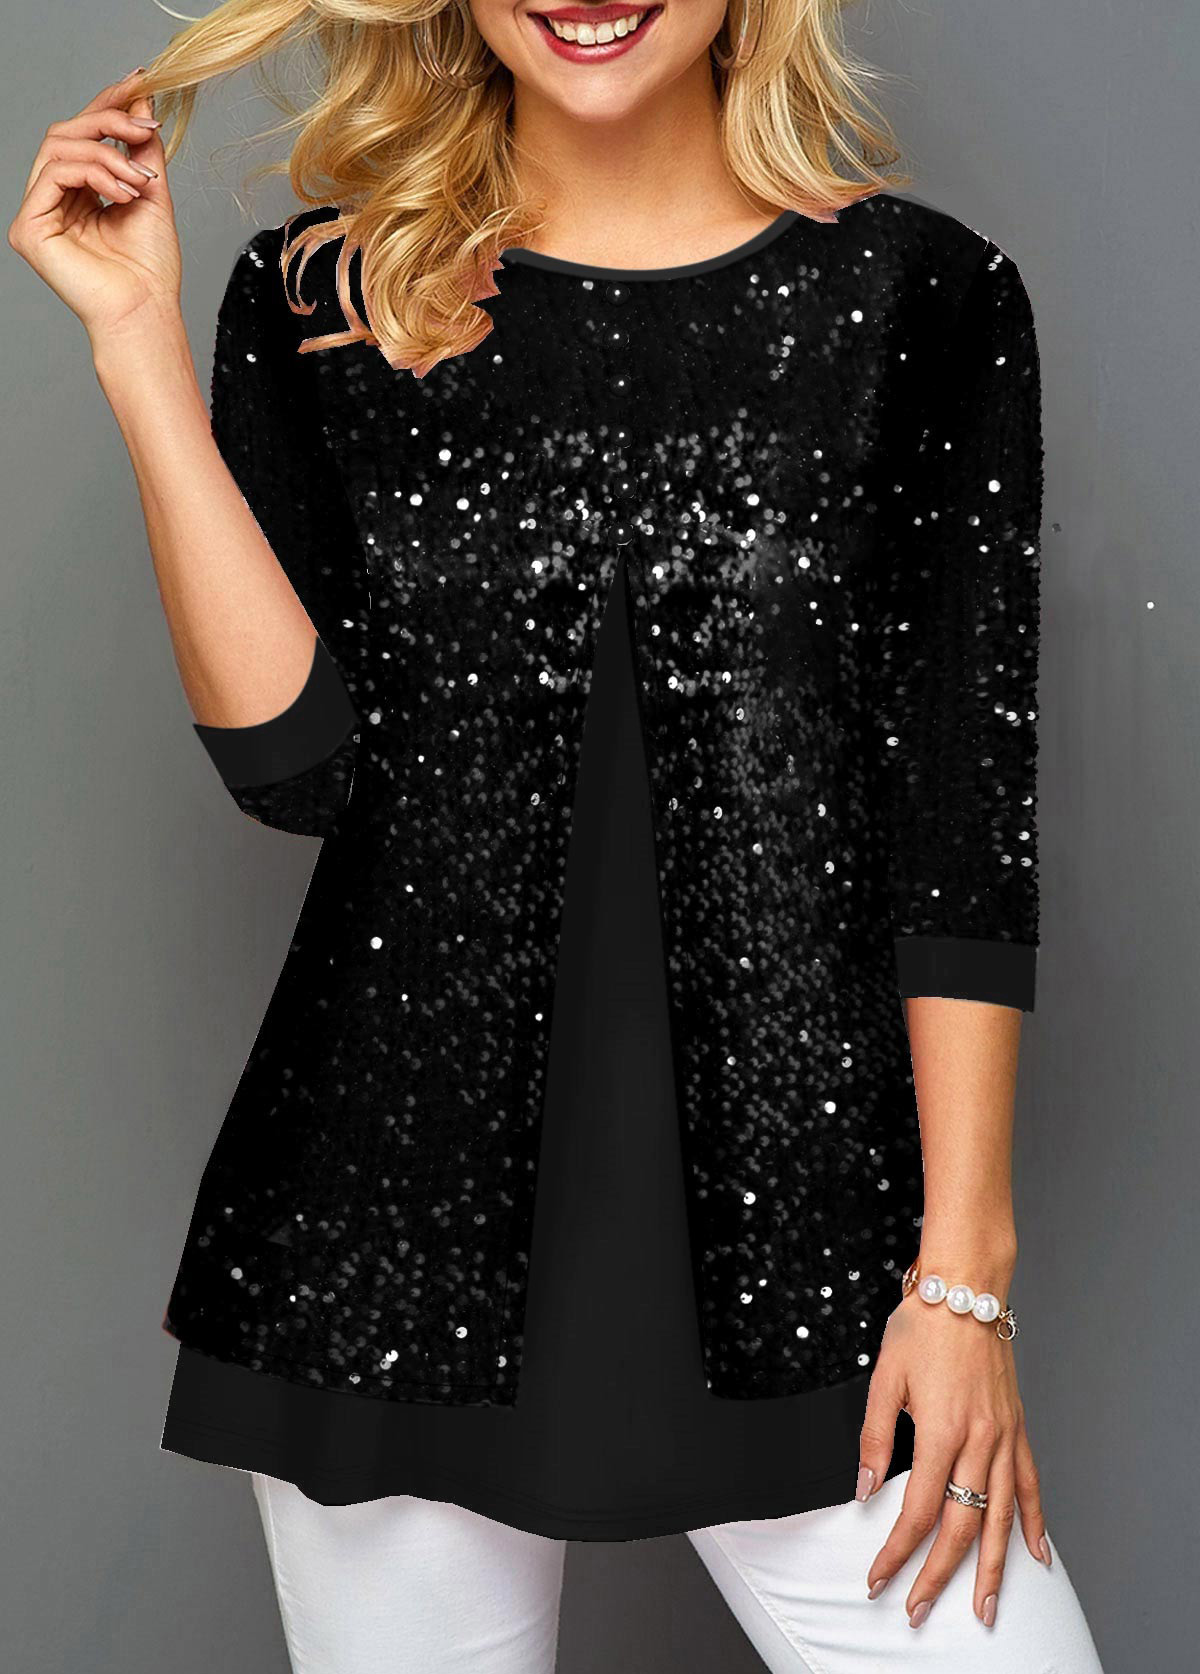 ROTITA Sequin Detail Black Faux Two Piece T Shirt